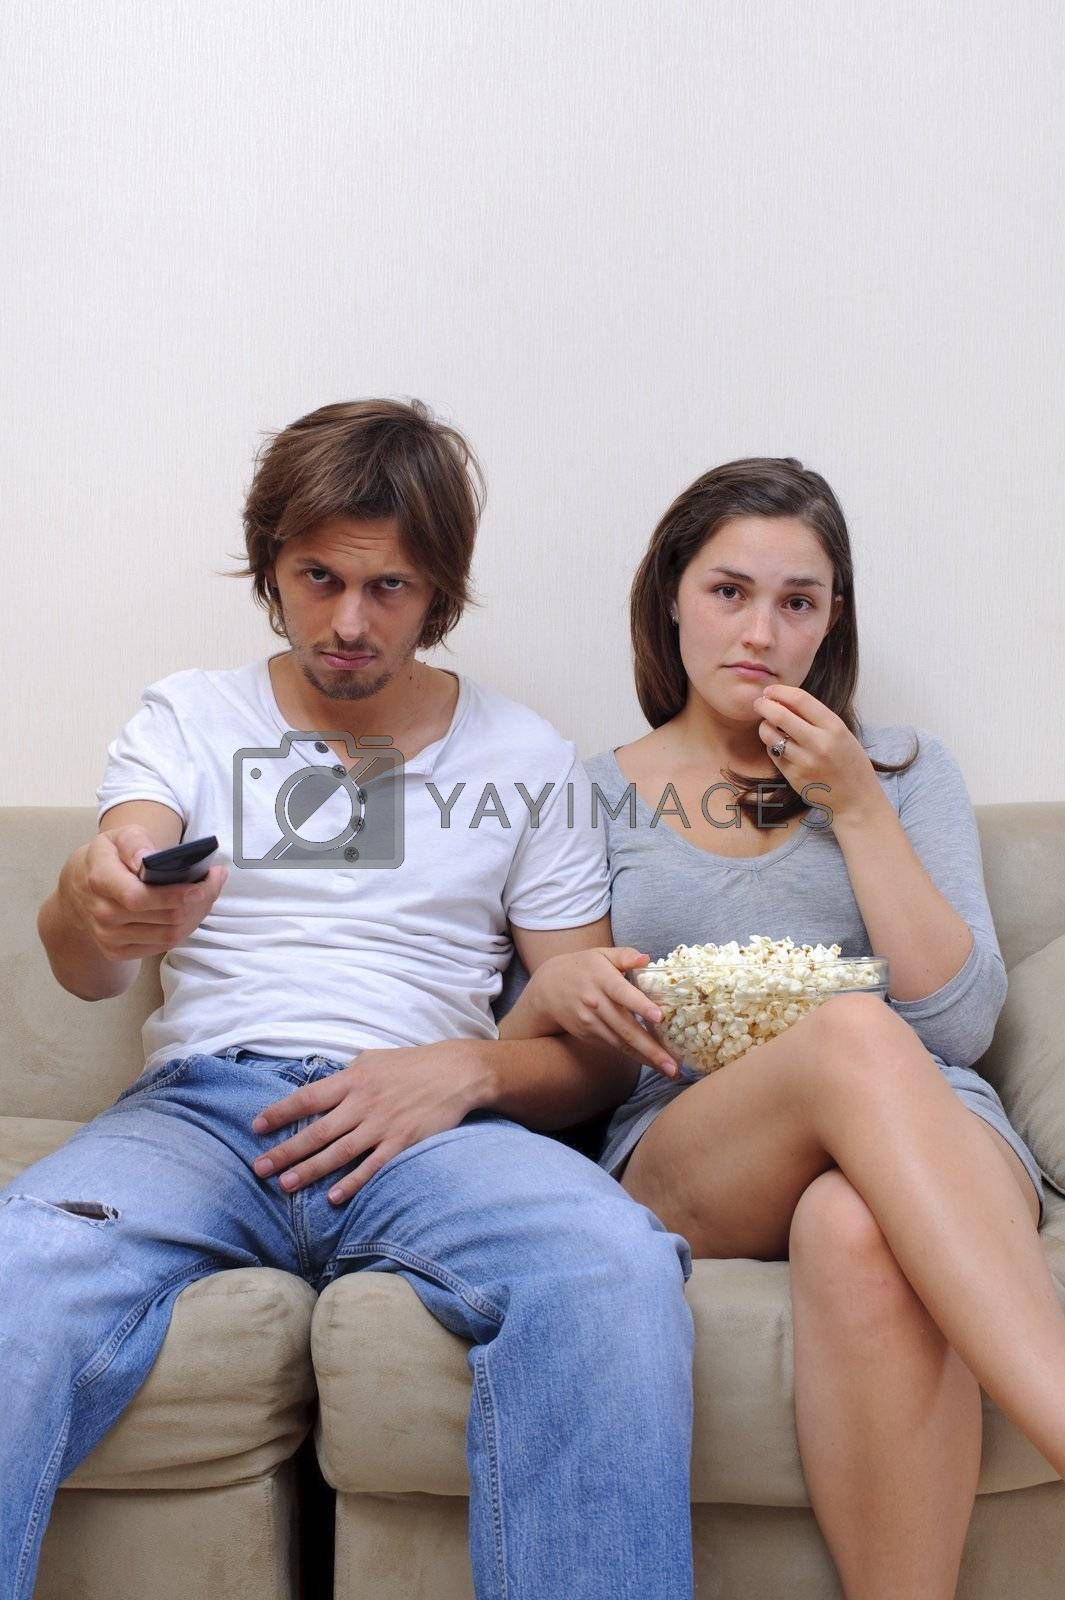 Couple watch a movie at home with popcorn